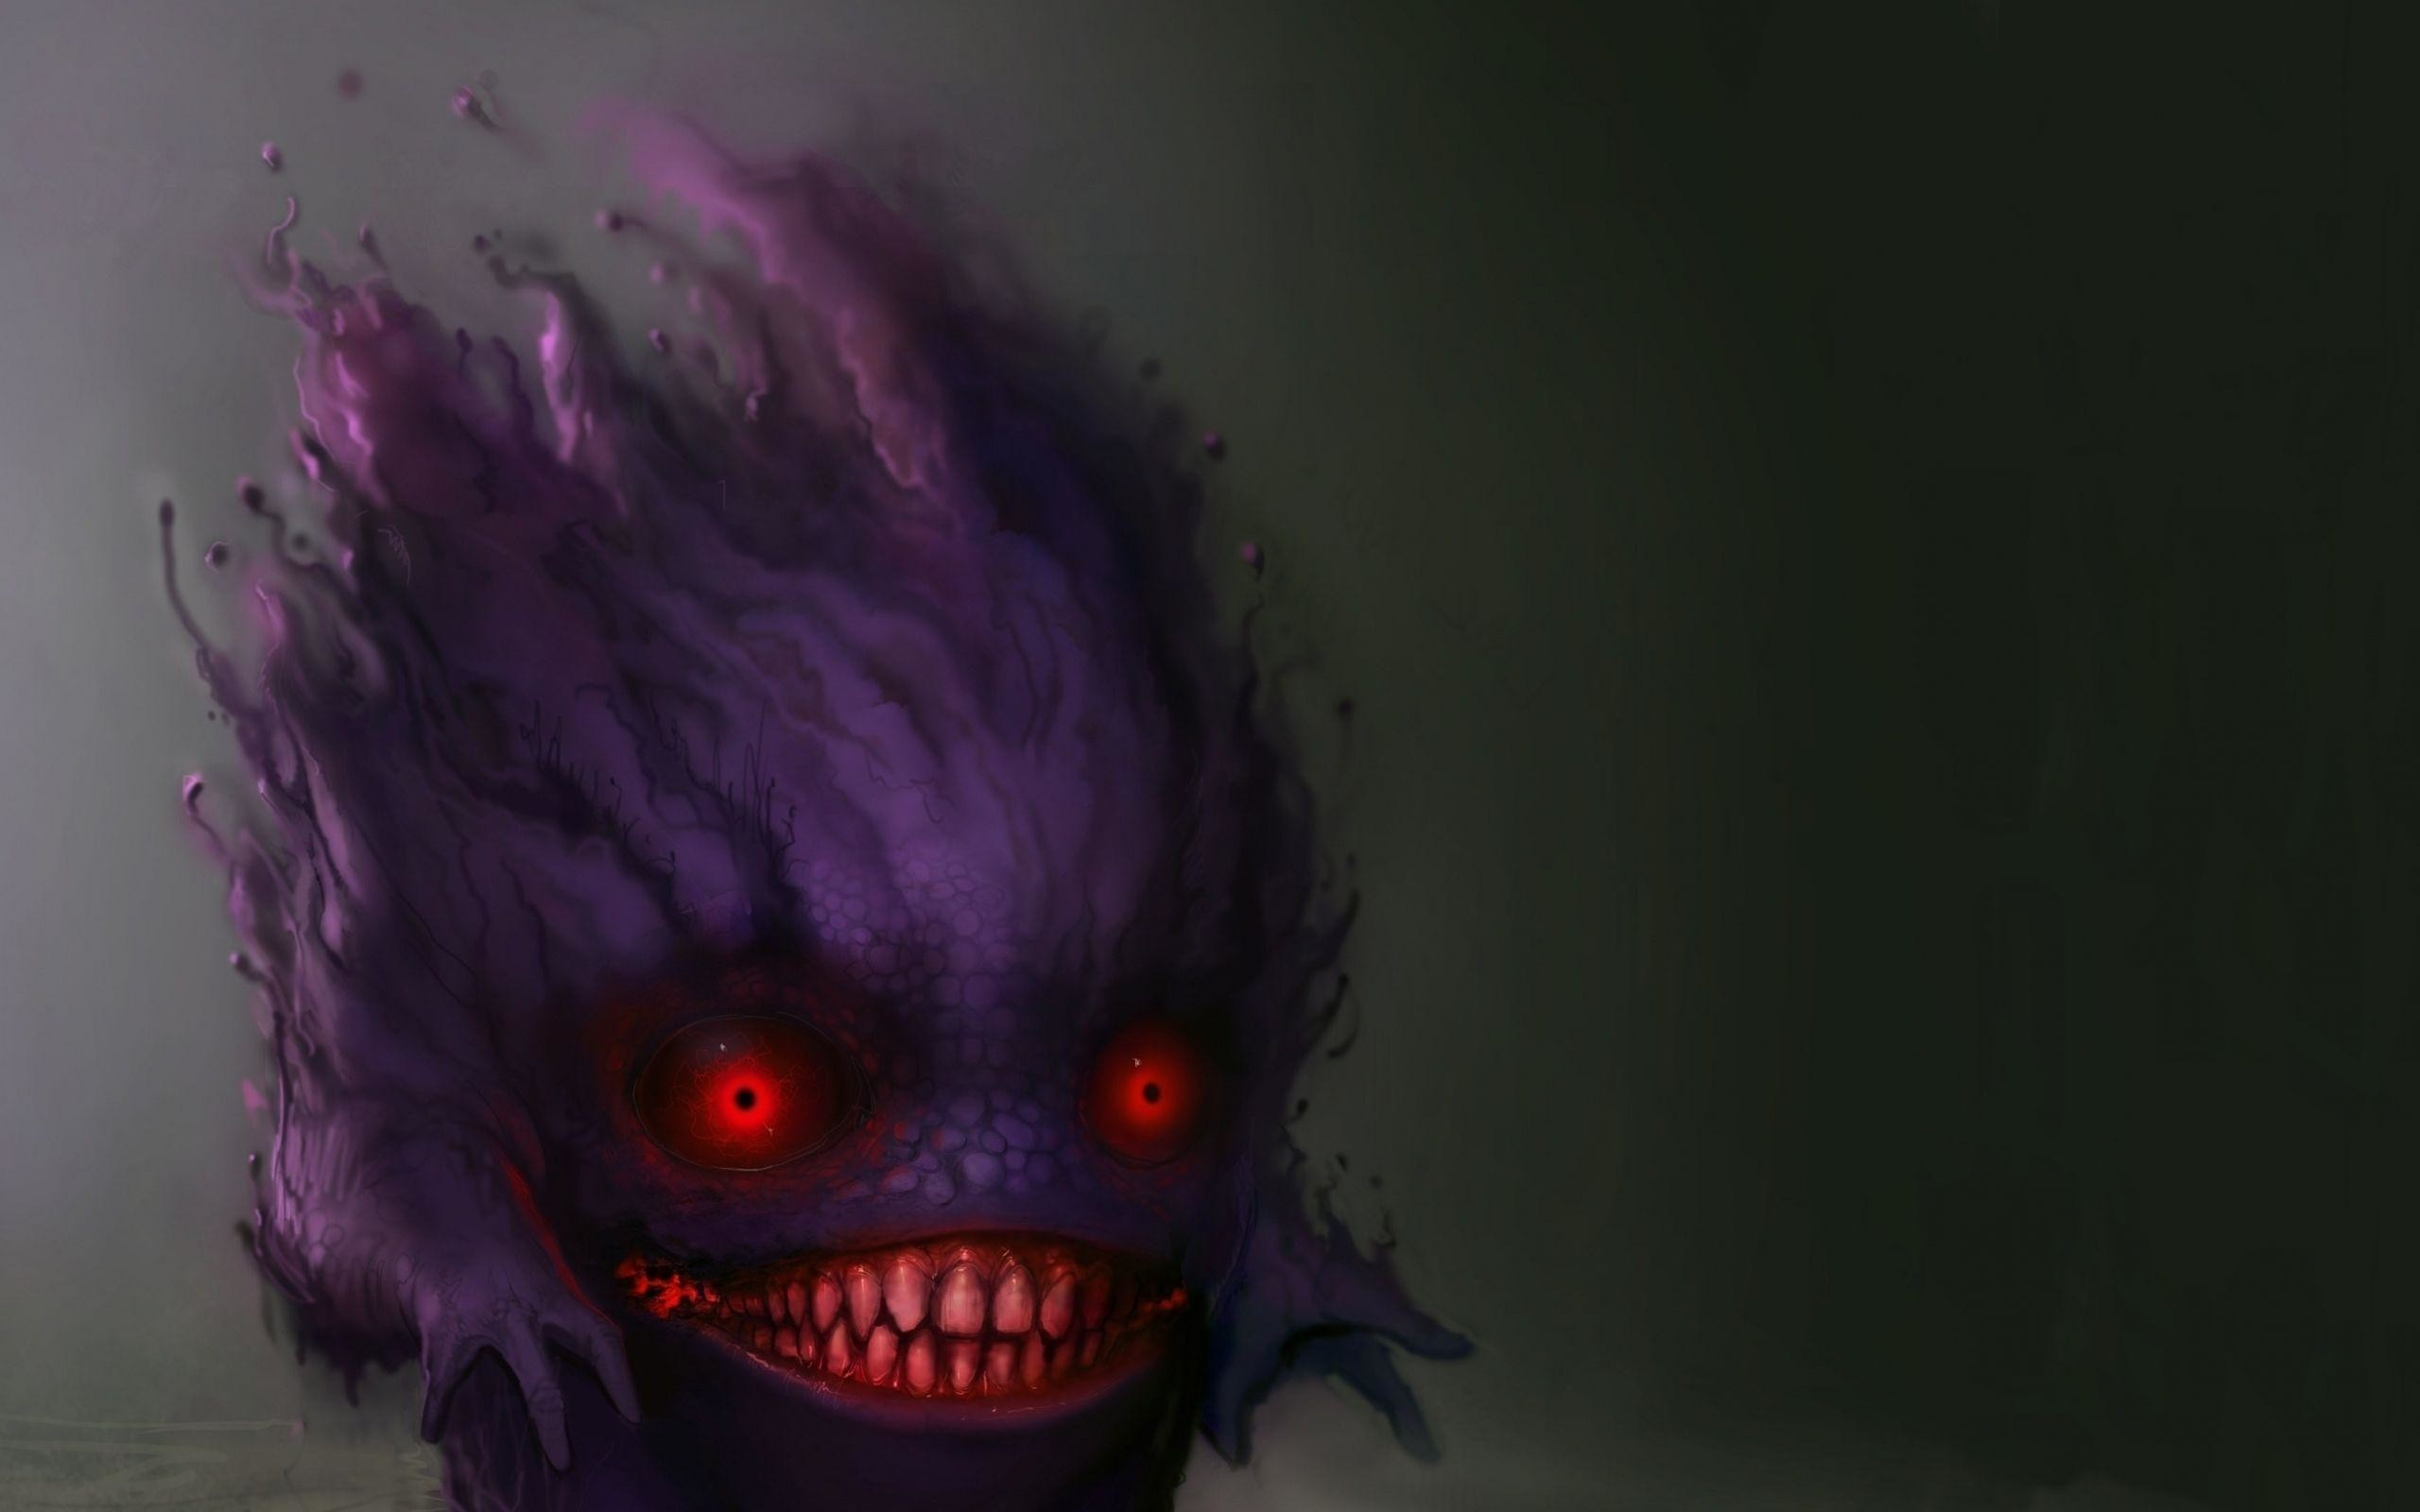 Ghastly Ghost Wallpaper 66 Images